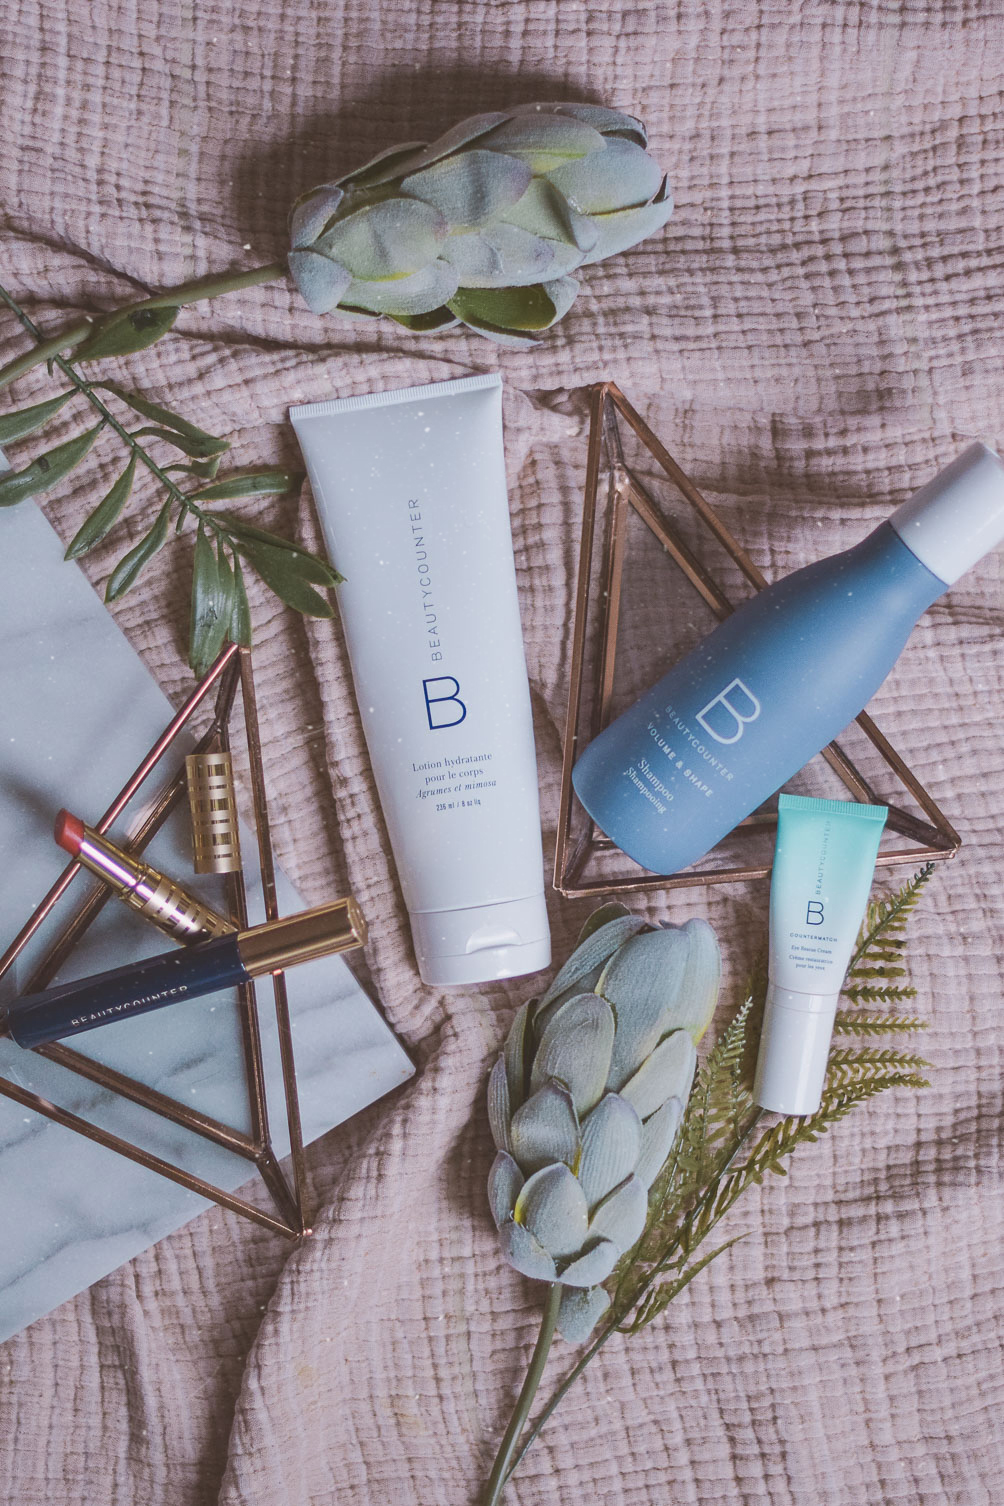 sharing how to clean sweep your beauty routine with toxin-free safe products by Beautycounter